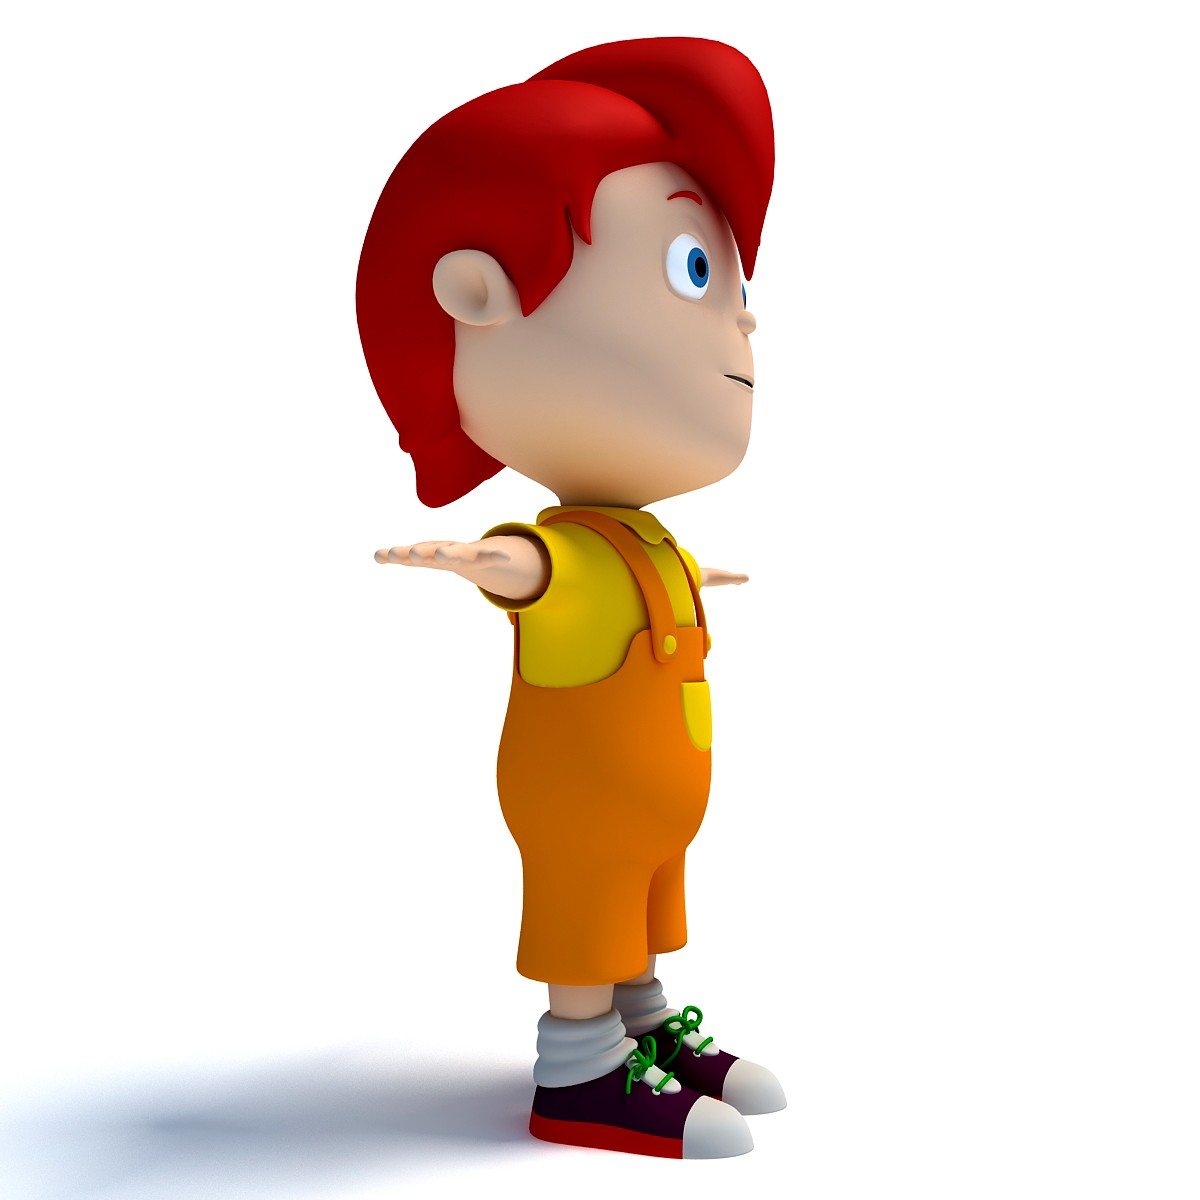 3d clipart characters clip free Free 3d Cartoon, Download Free Clip Art, Free Clip Art on Clipart ... clip free